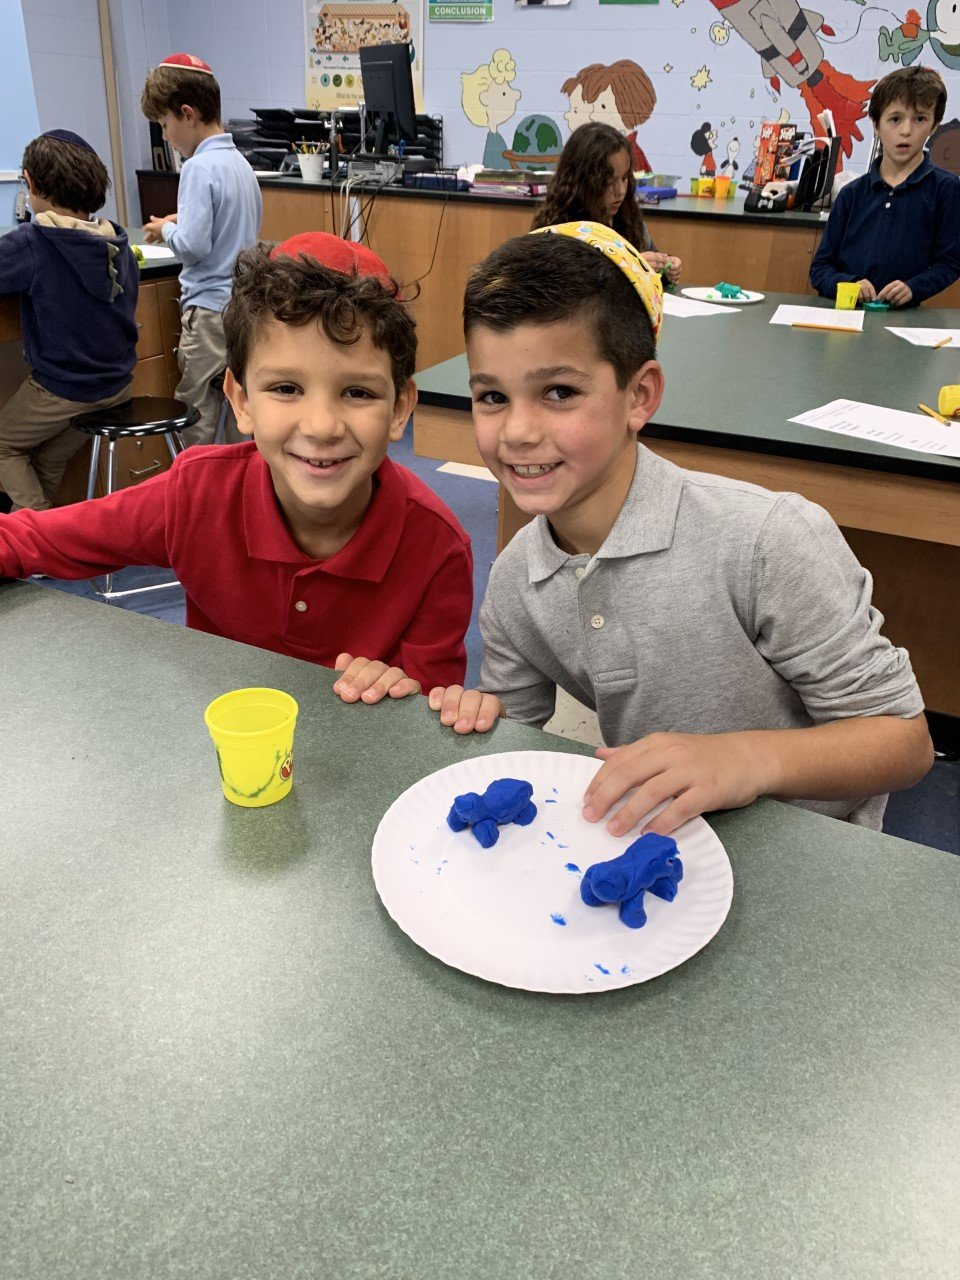 Brandeis School third-graders Rom Harel, left, and Aviv Shabtay, with their play dough-made invertebrate facsimile animals.